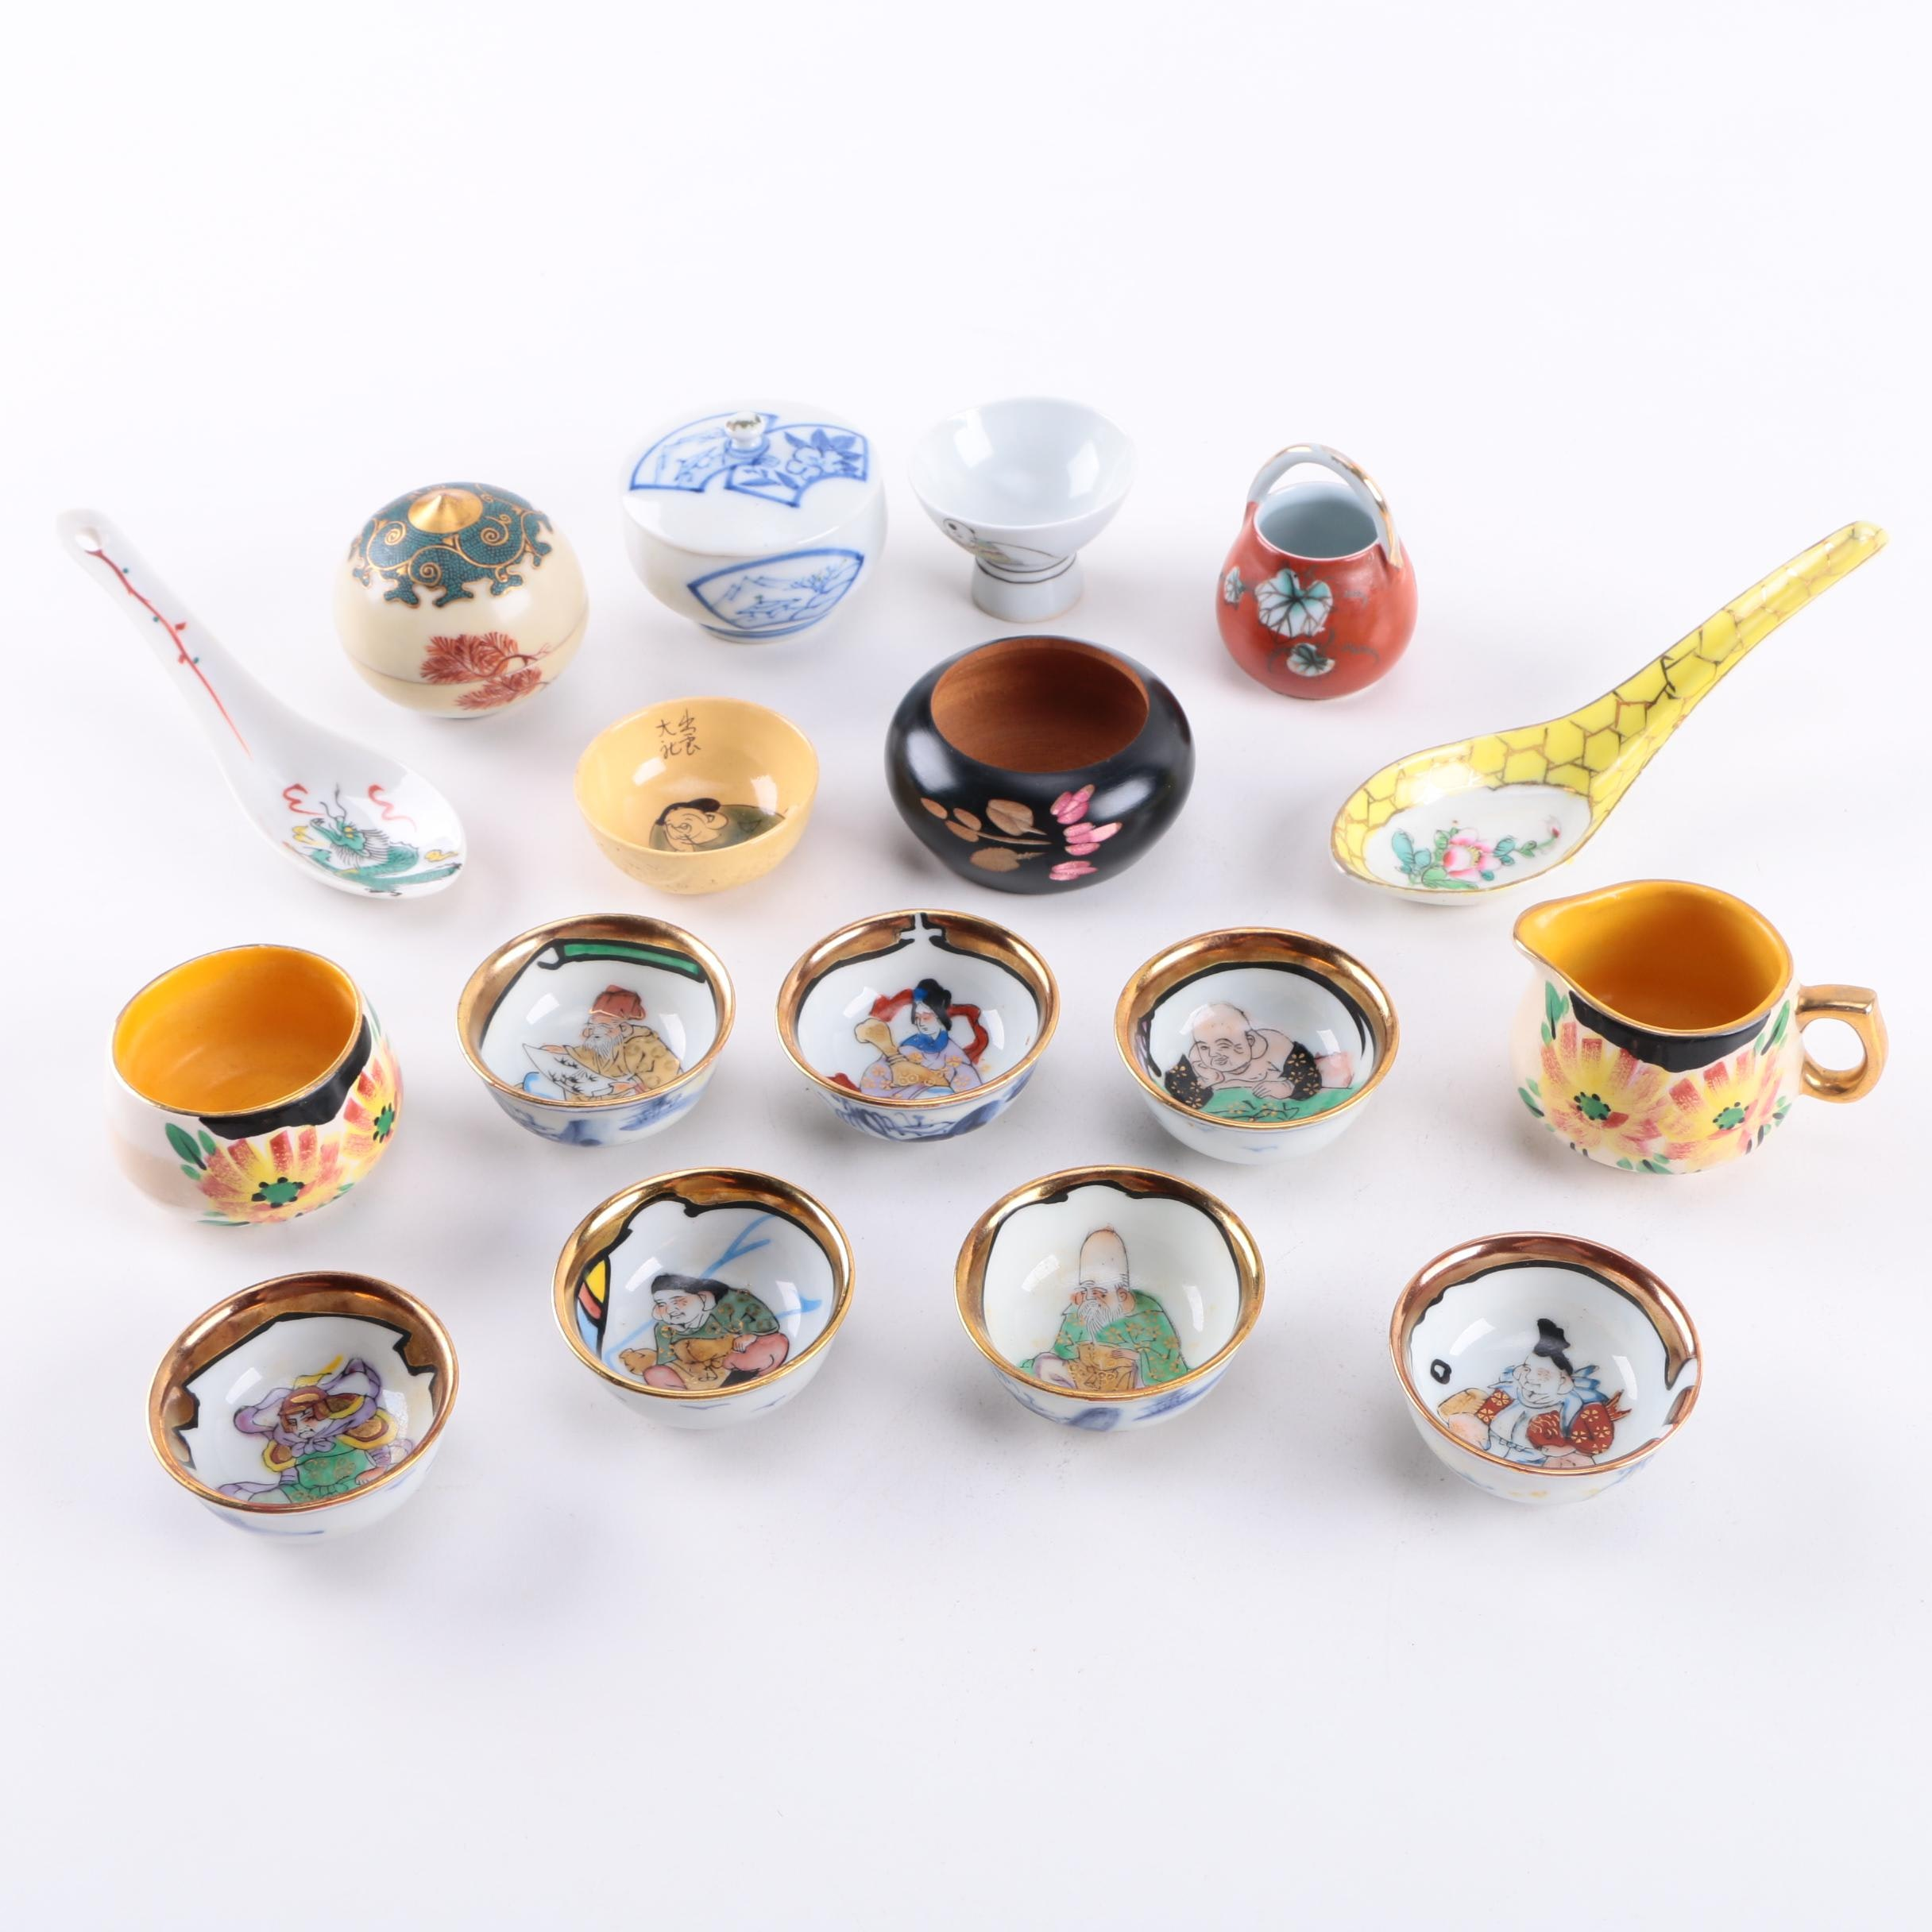 Assorted Miniature Asian Style Bowls and Tableware